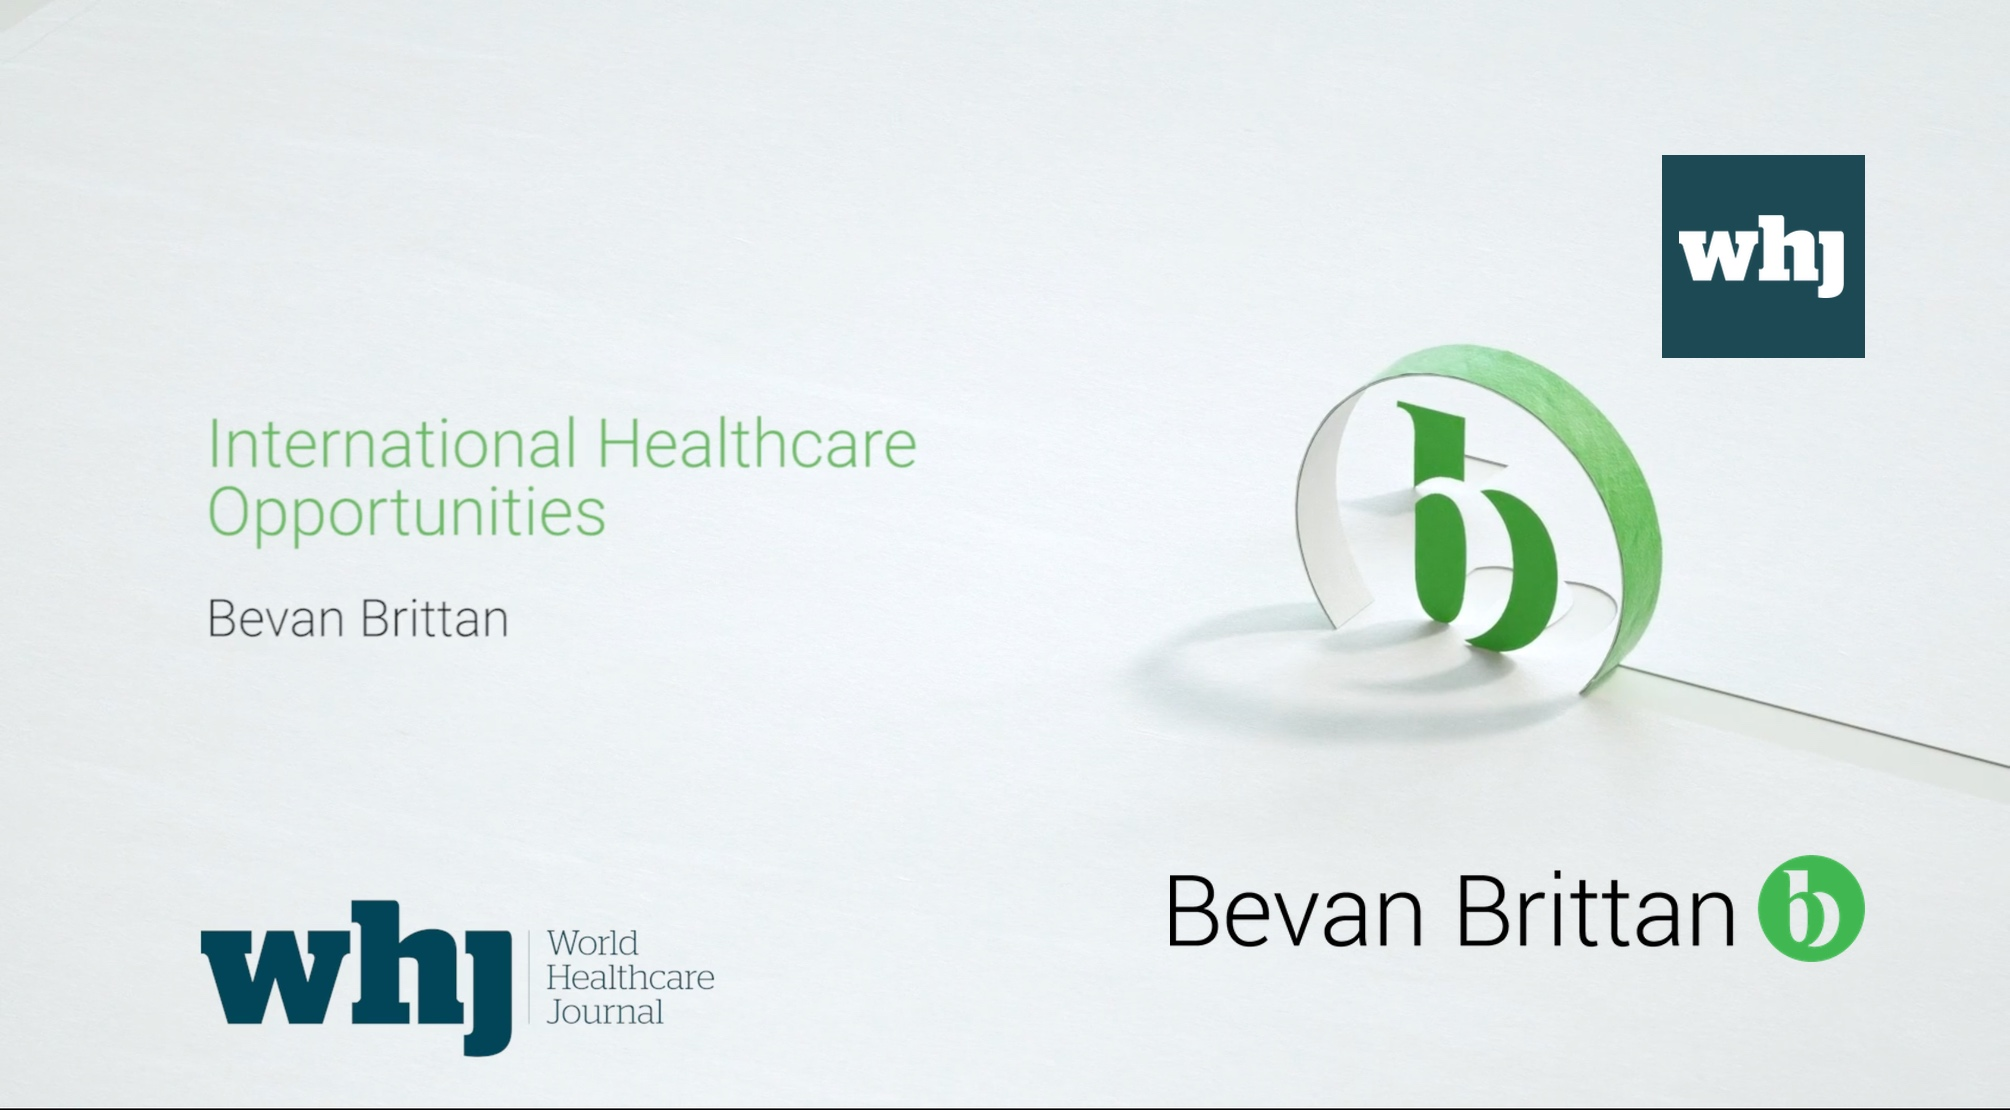 VIDEO: International Healthcare Opportunities with WHJ and Bevan Brittan